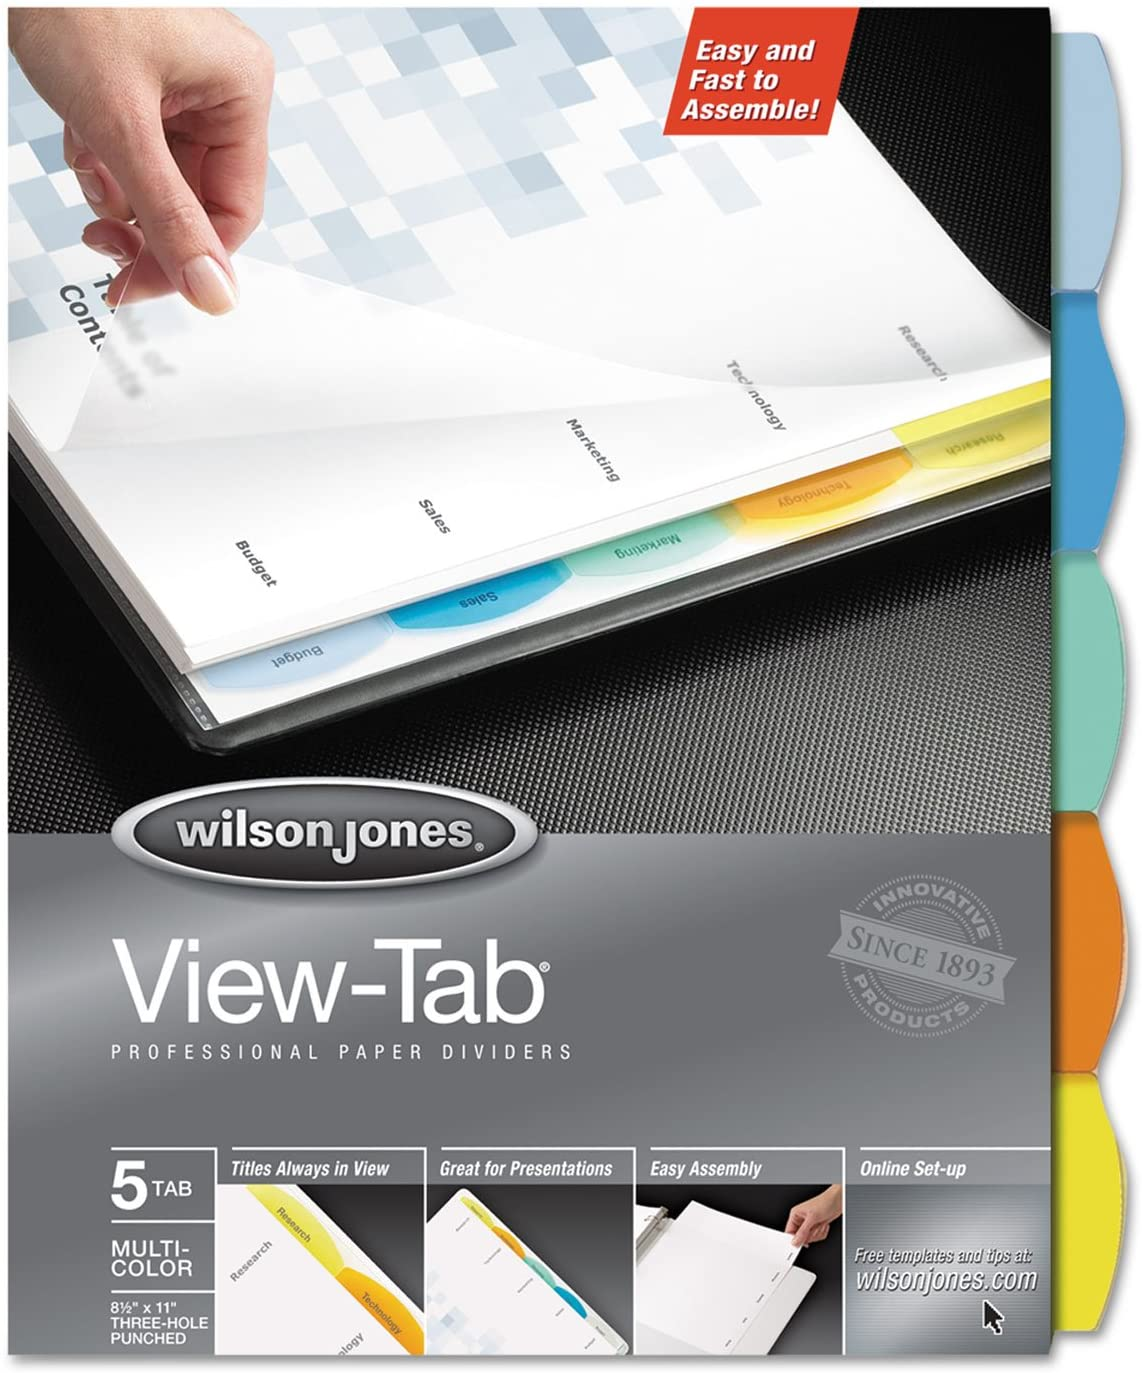 Wilson Jones 55964 View Tab Paper Dividers, 5-Tab, 8-1/2-Inch x11-Inch, Multi